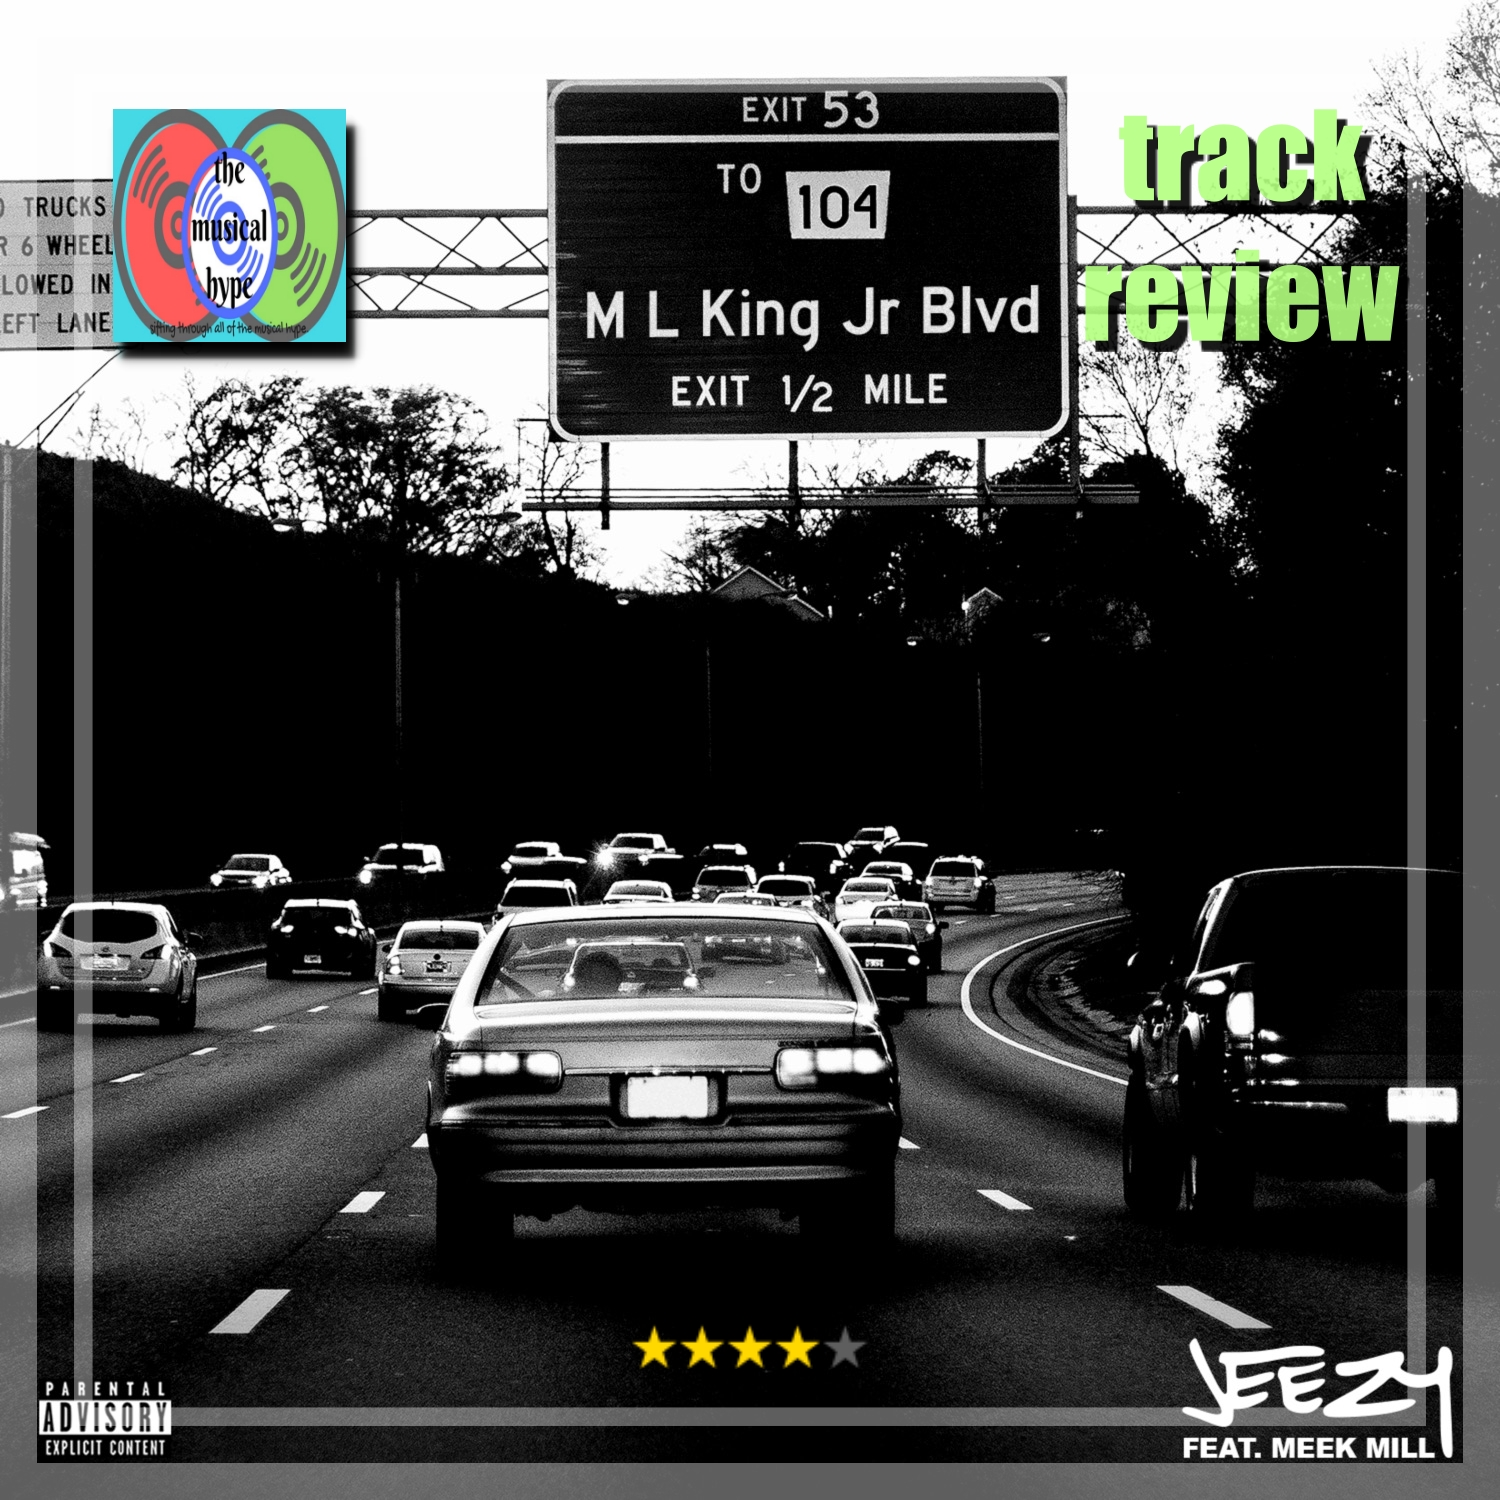 Jeezy, MLK BLVD | Track Review